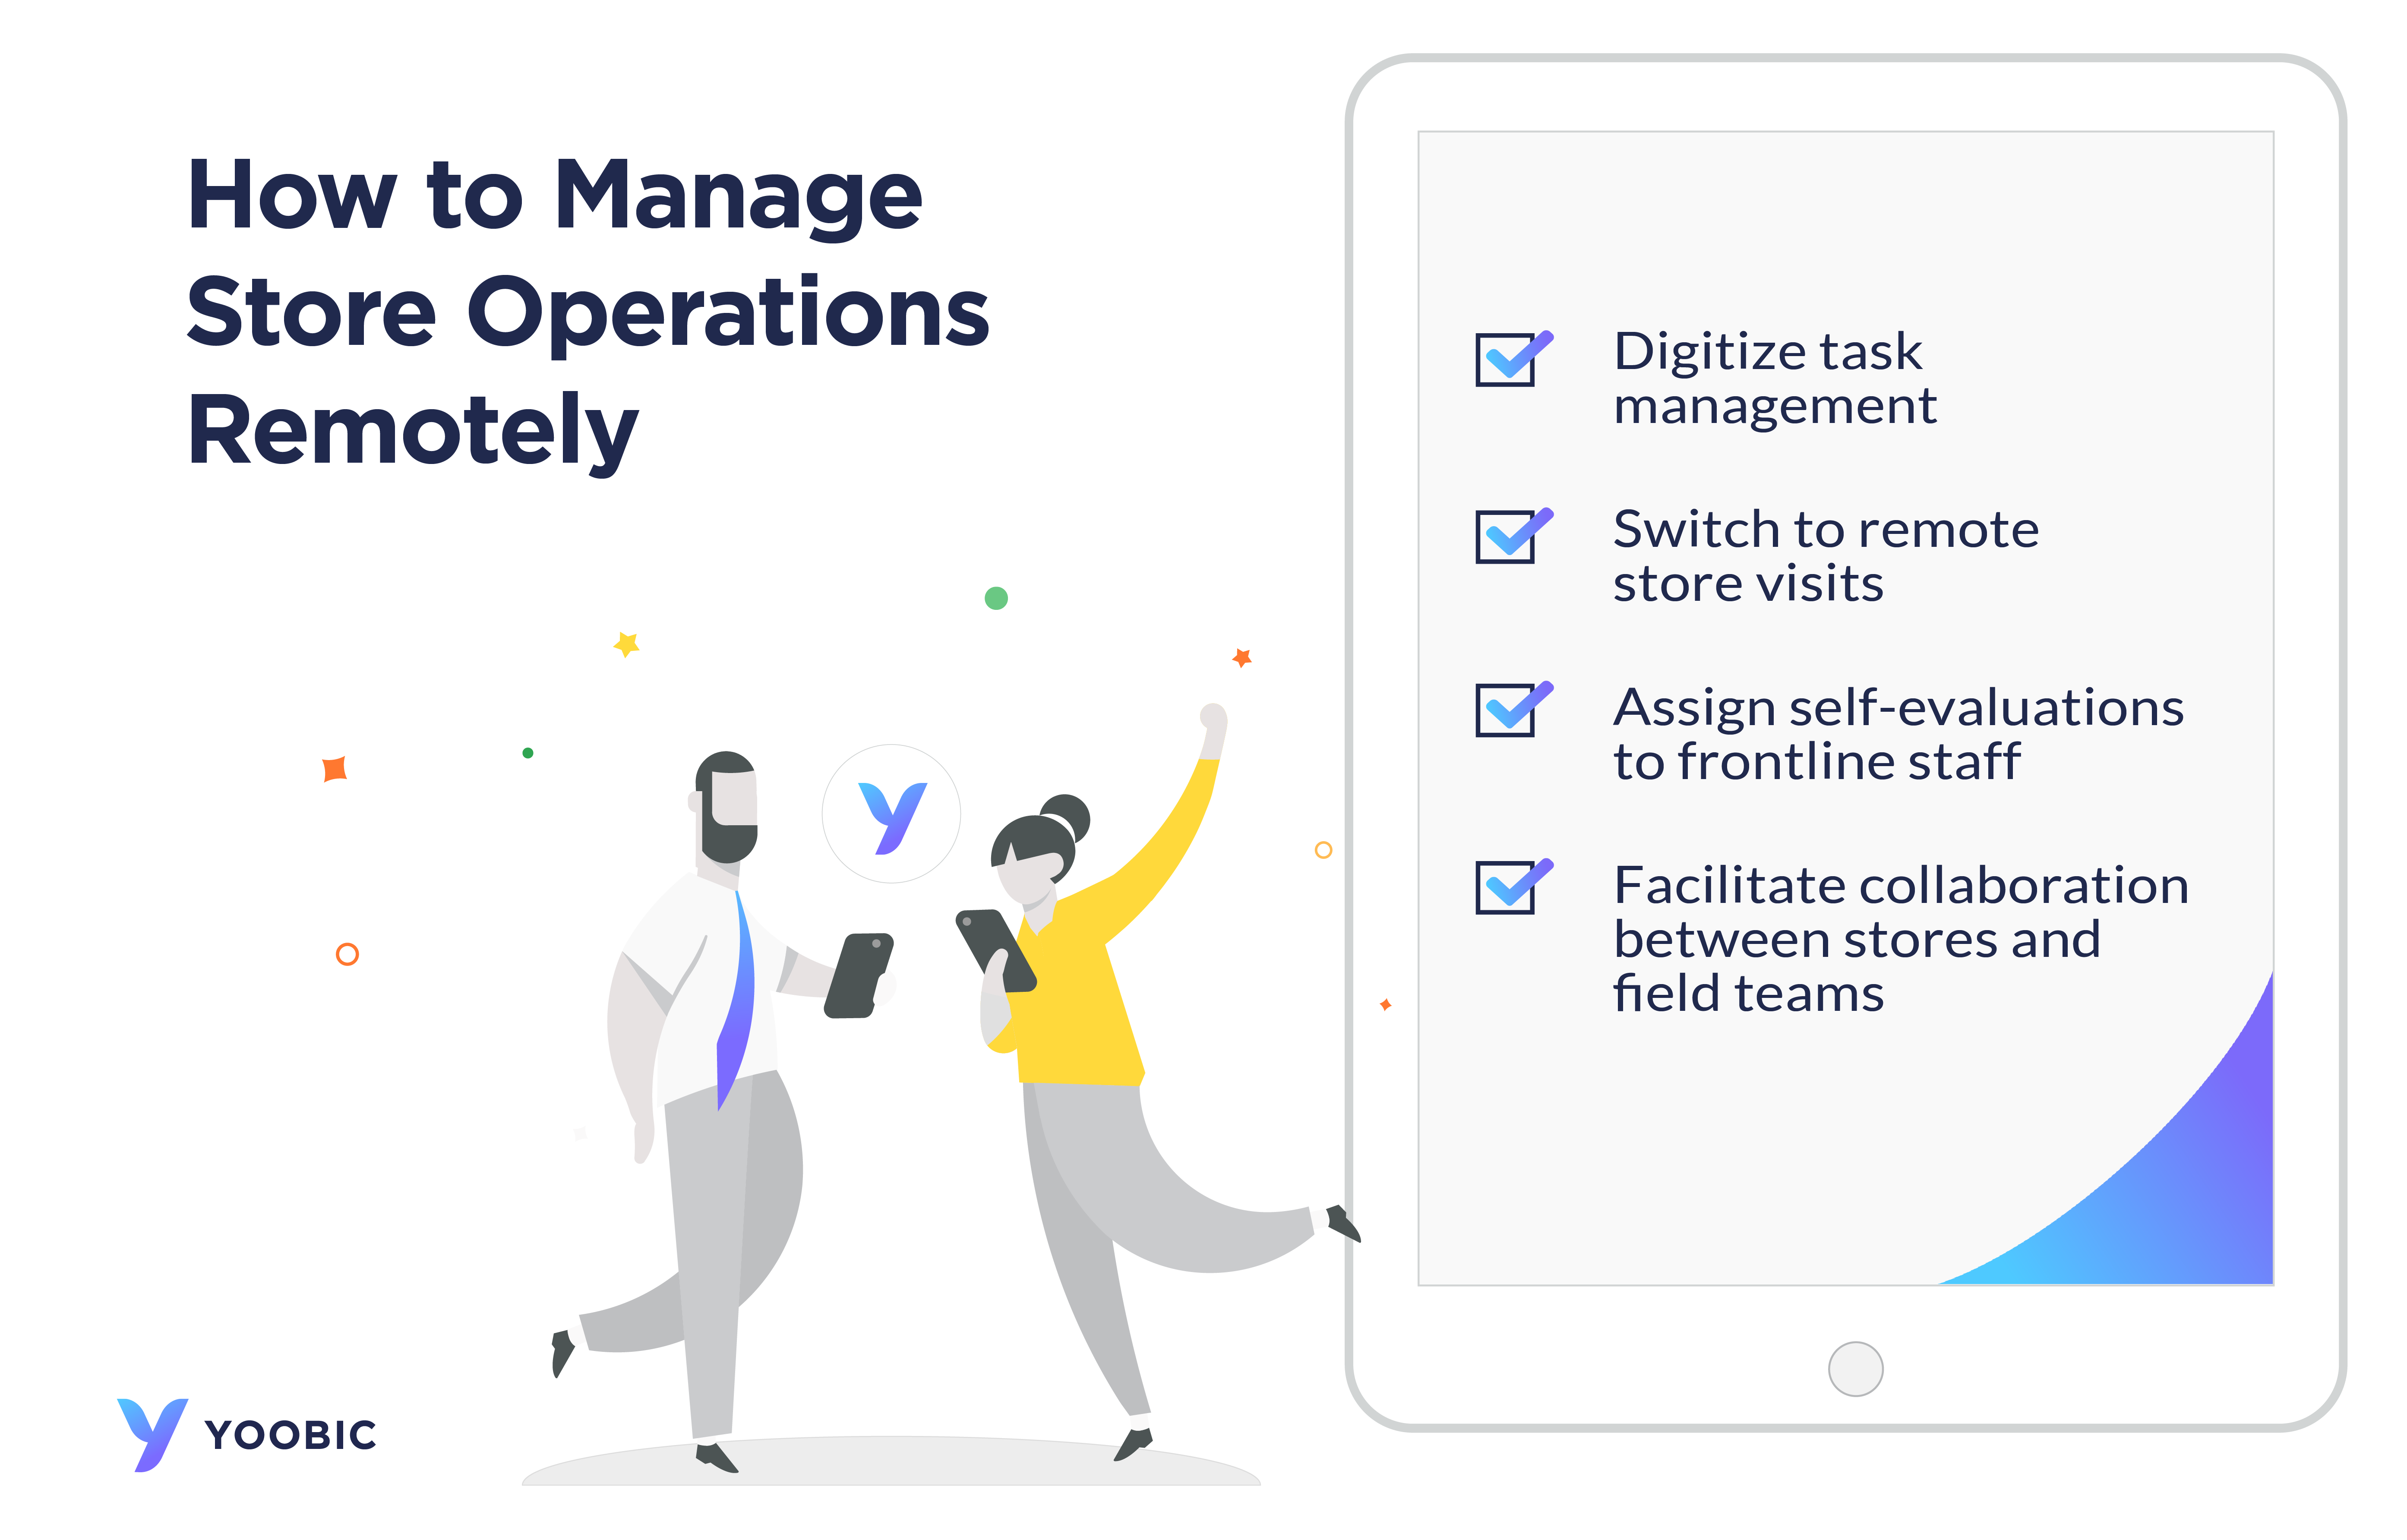 Manage-store-operations-remotely-01-01